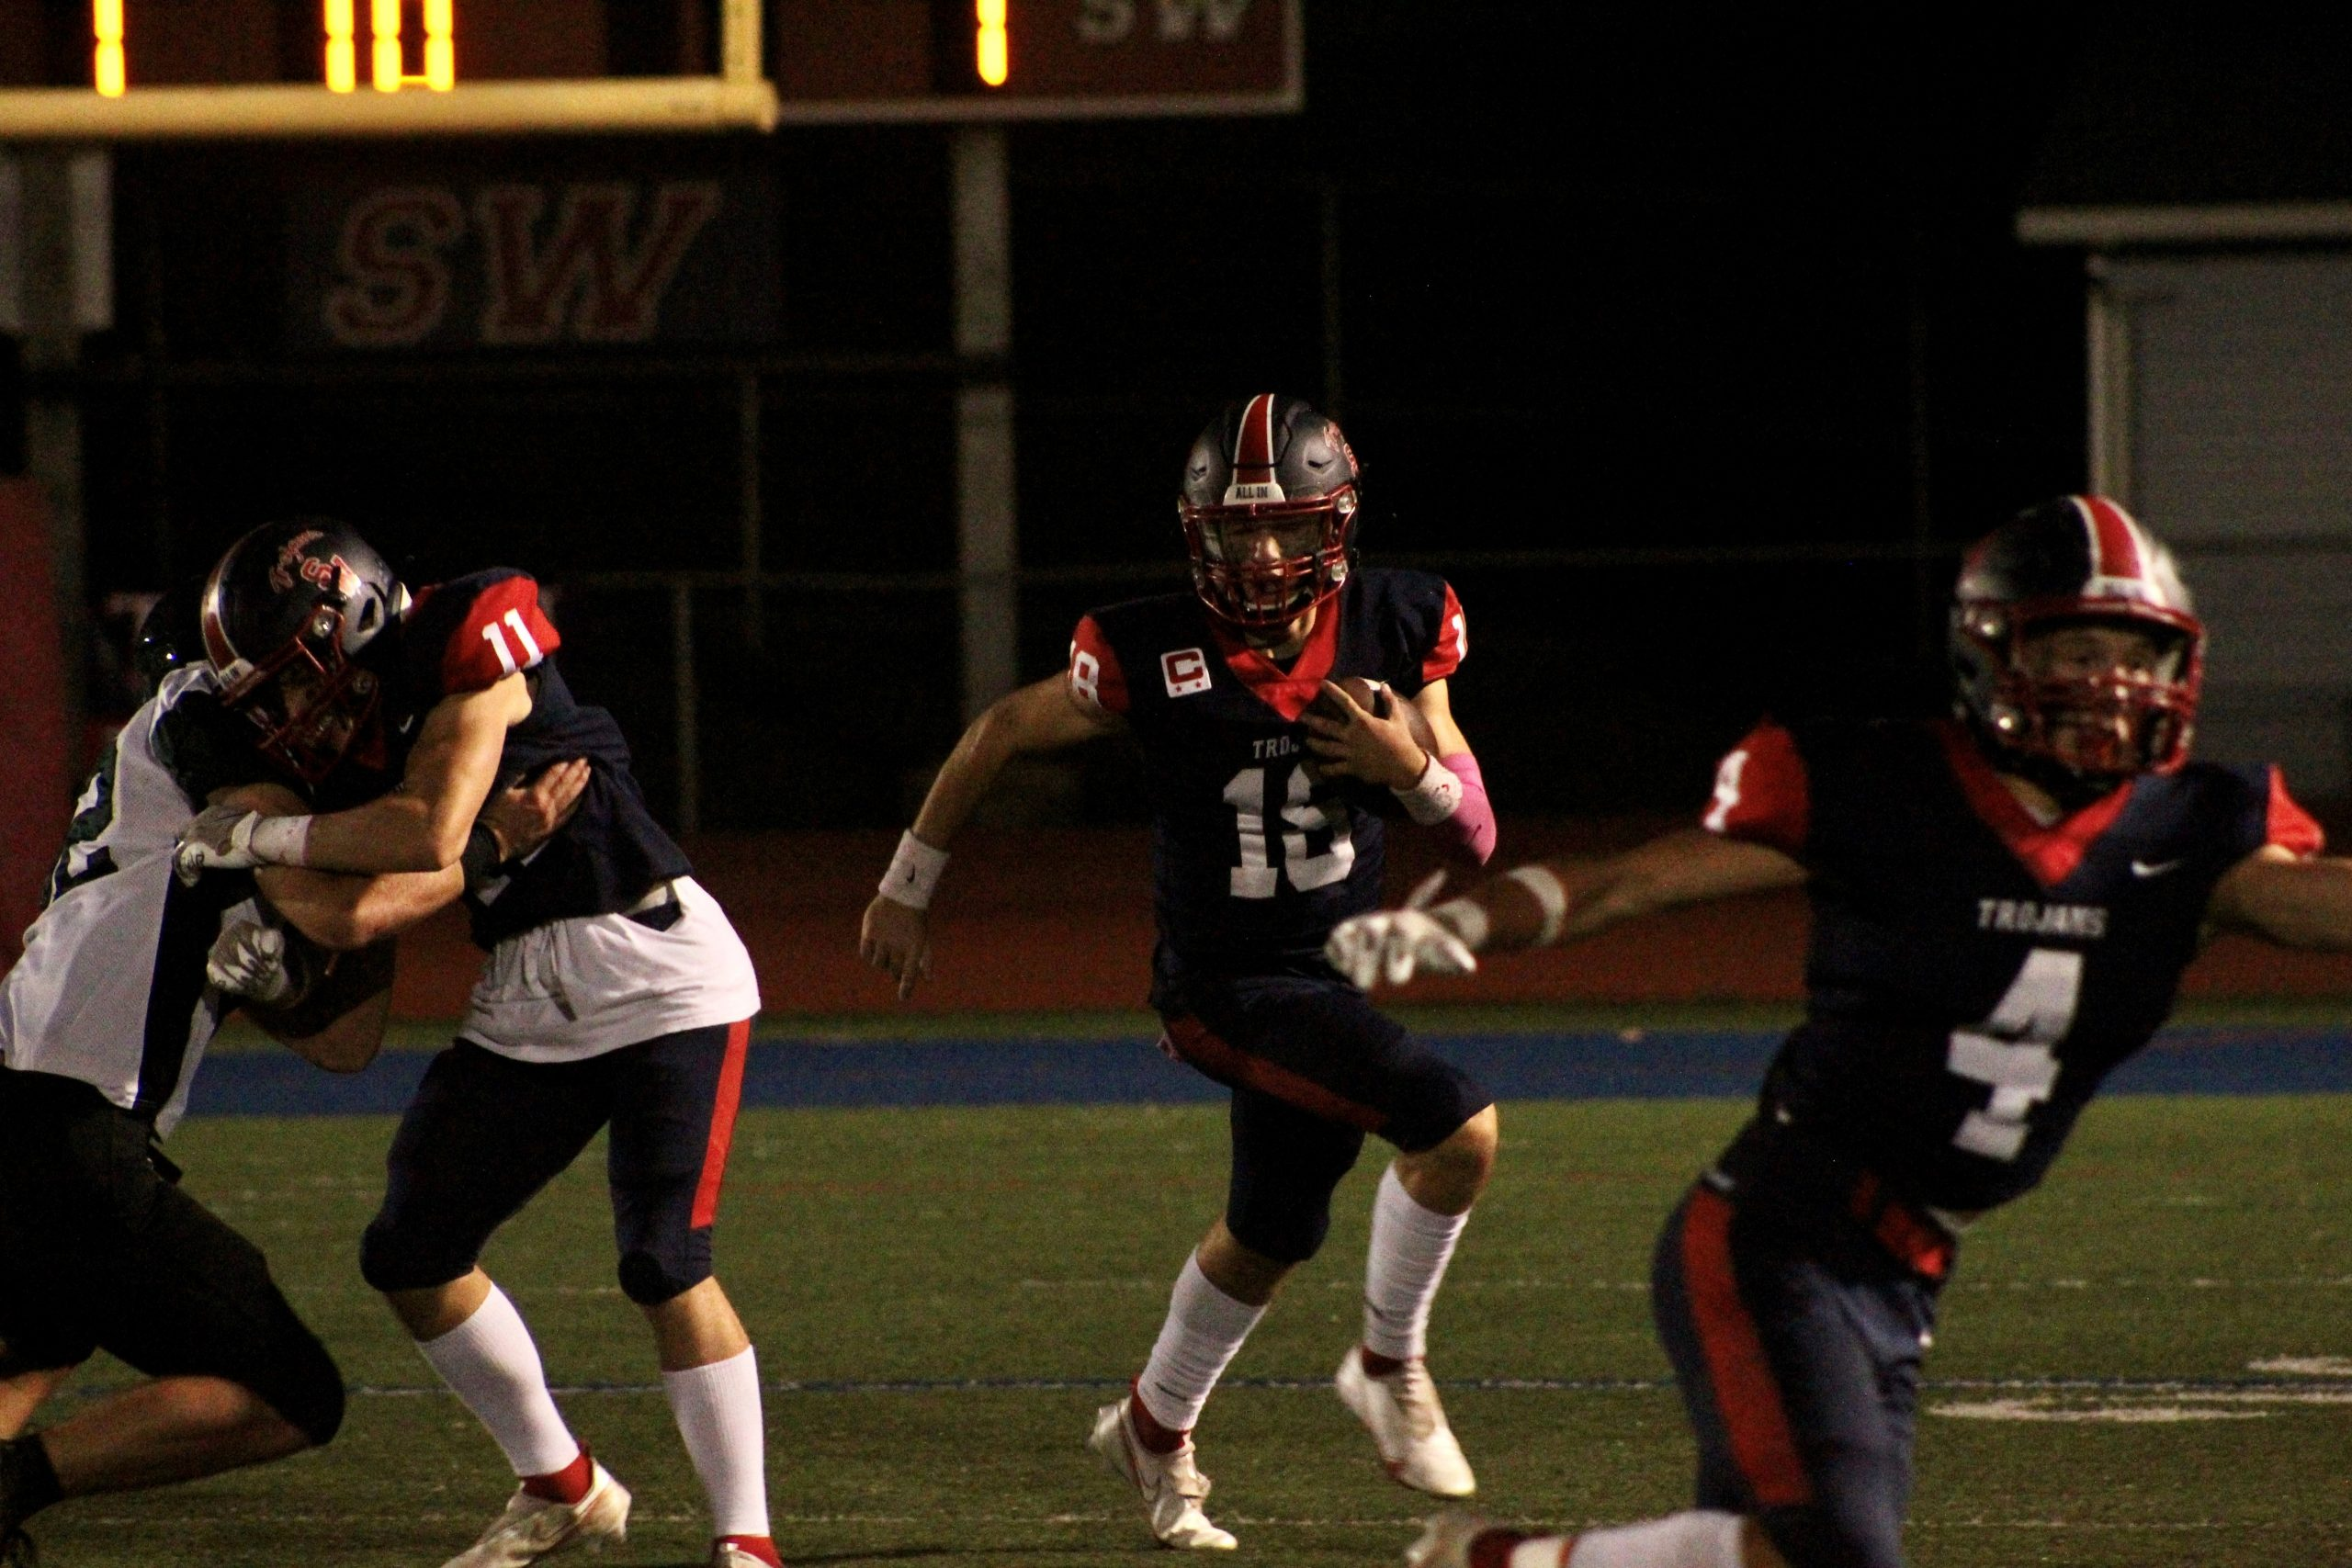 Kennedy shines as Trojans bounce back with 36-12 win over Gators